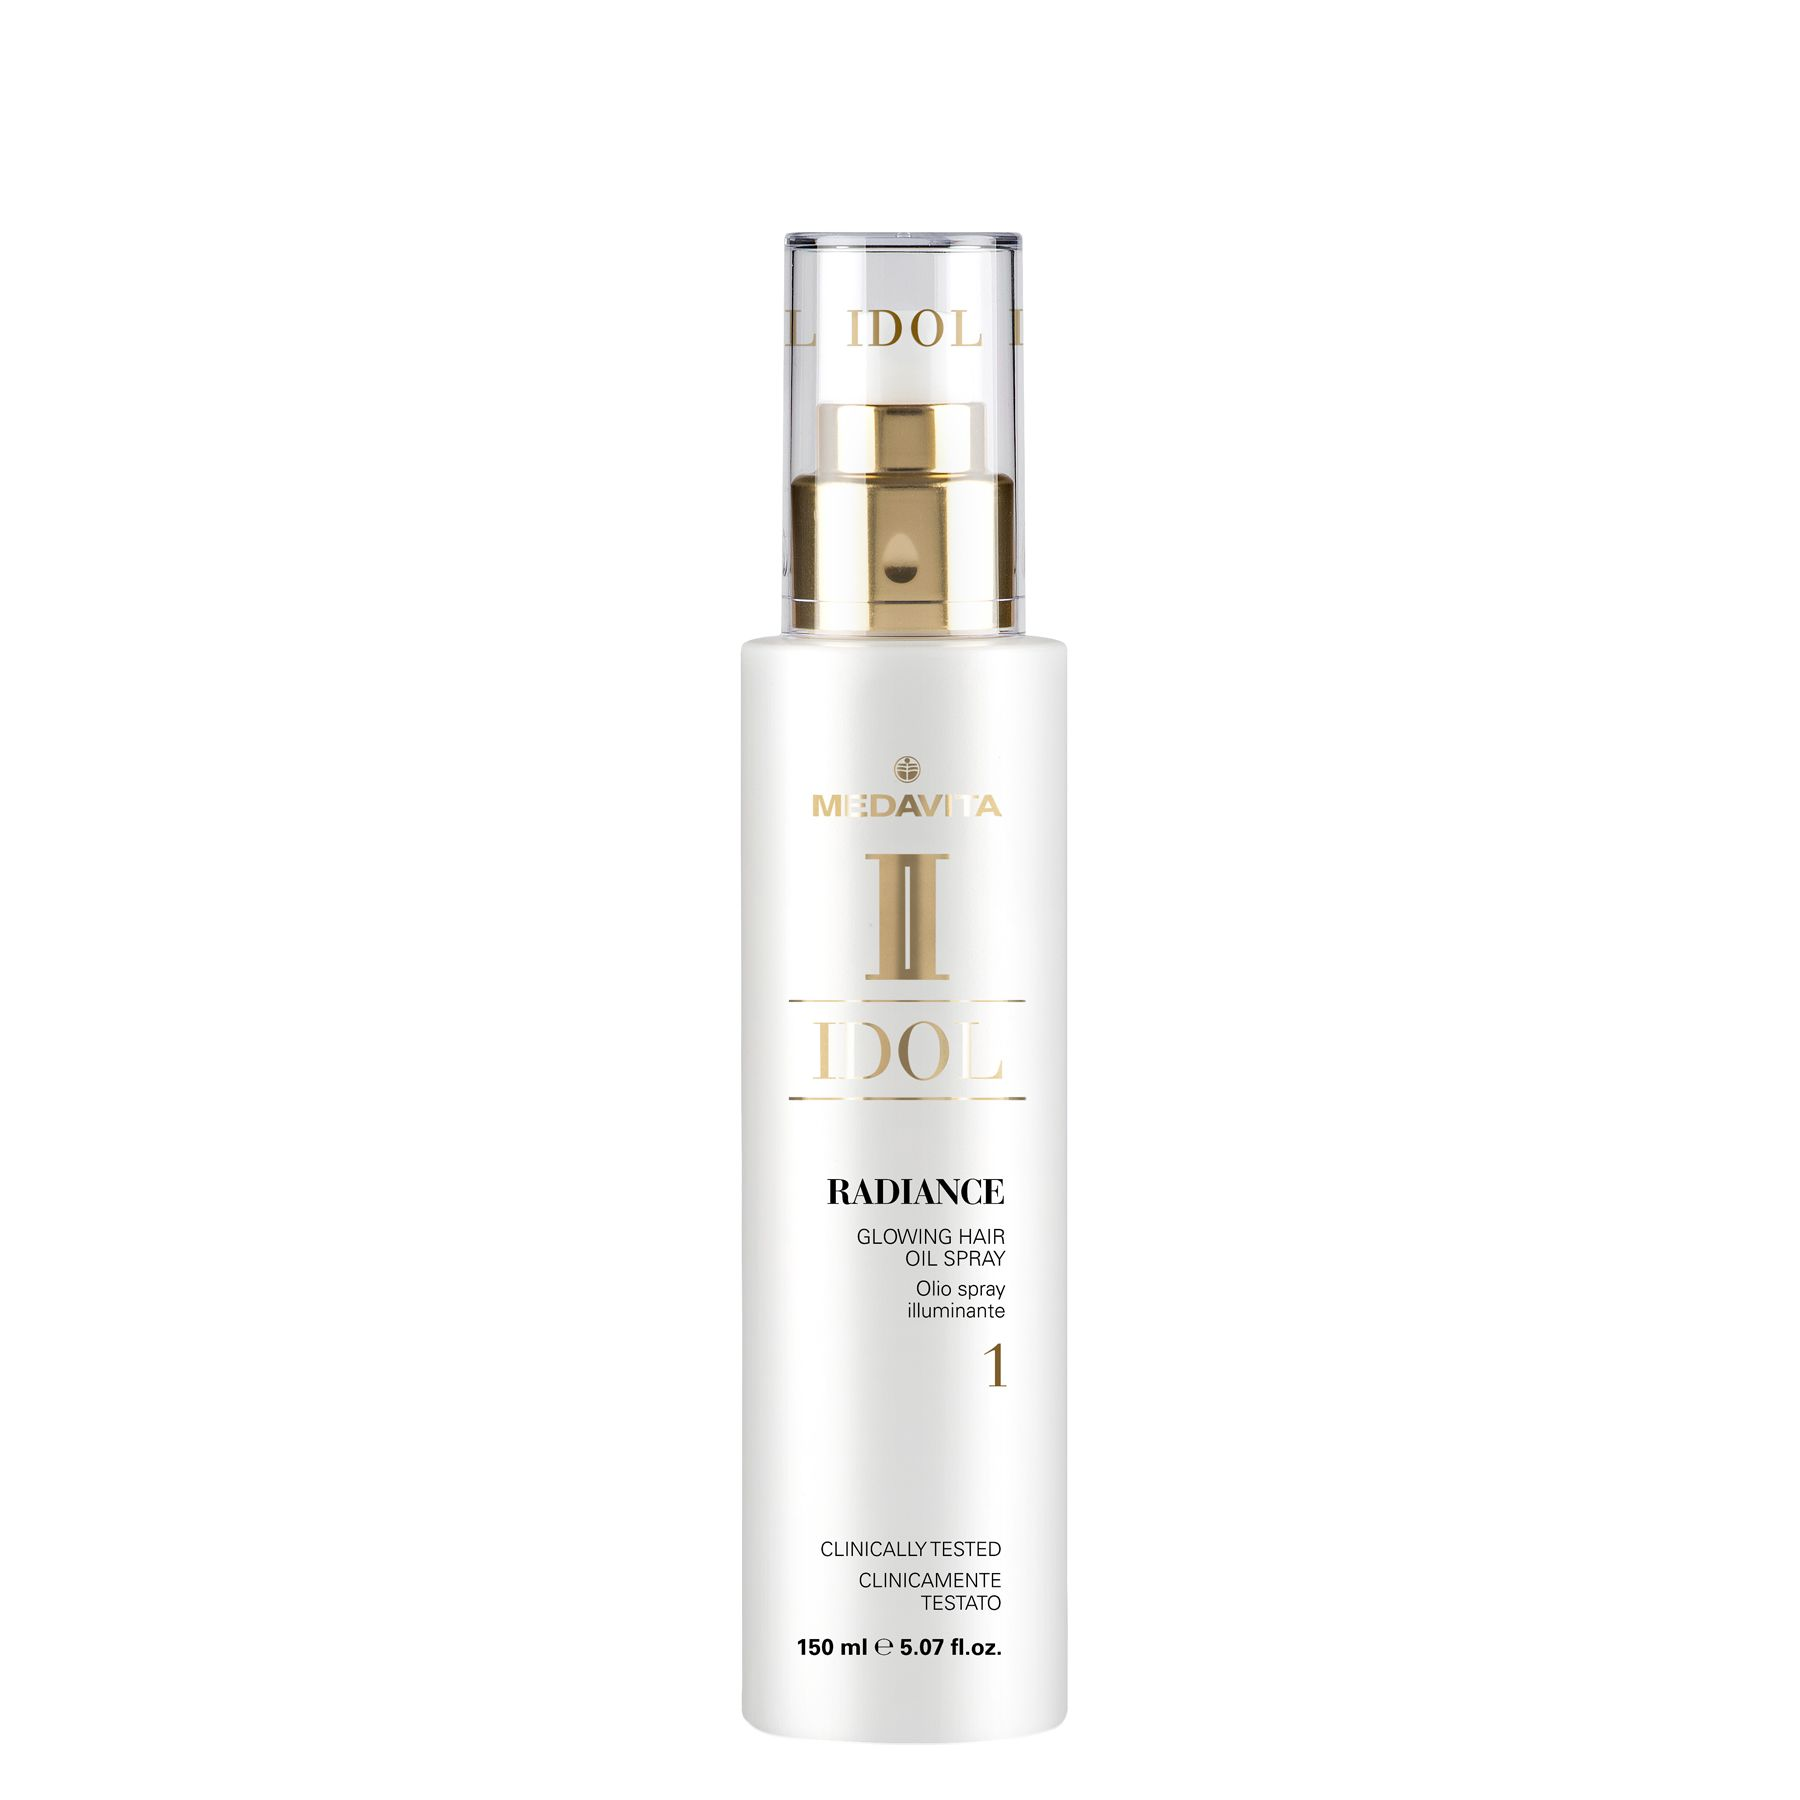 Radiance - Olio spray illuminante 150ml